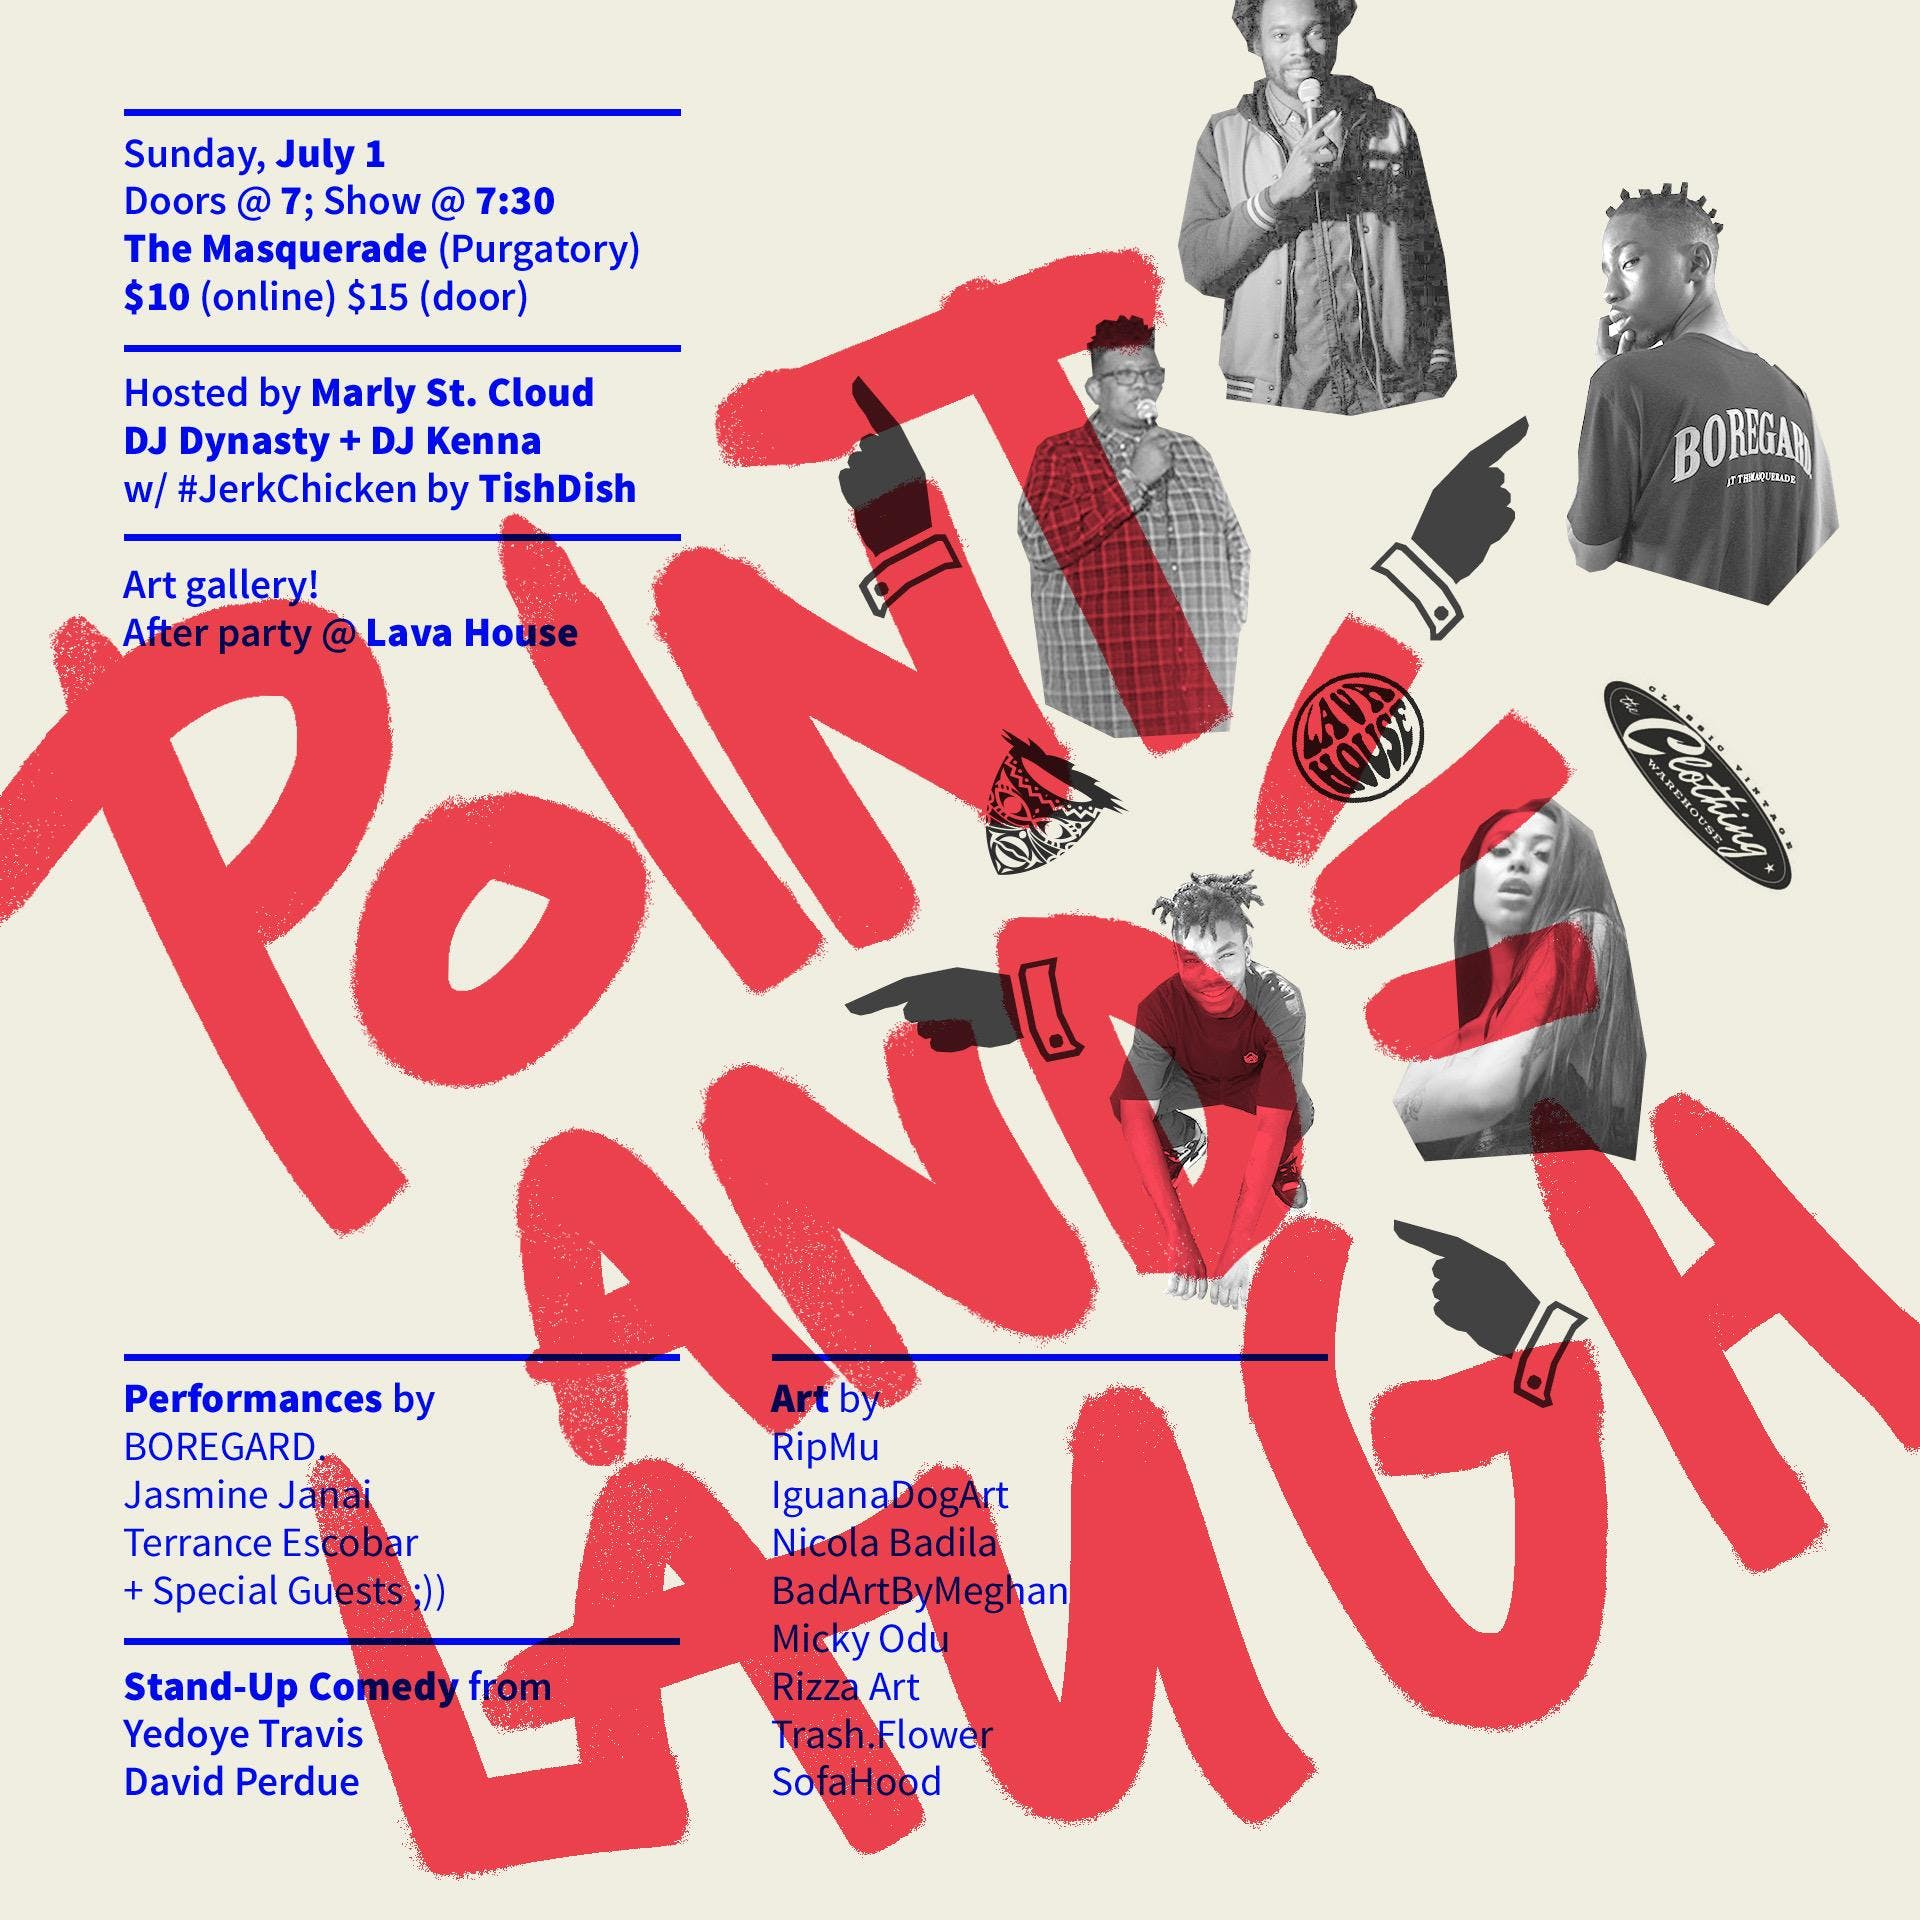 POINT AND LAUGH